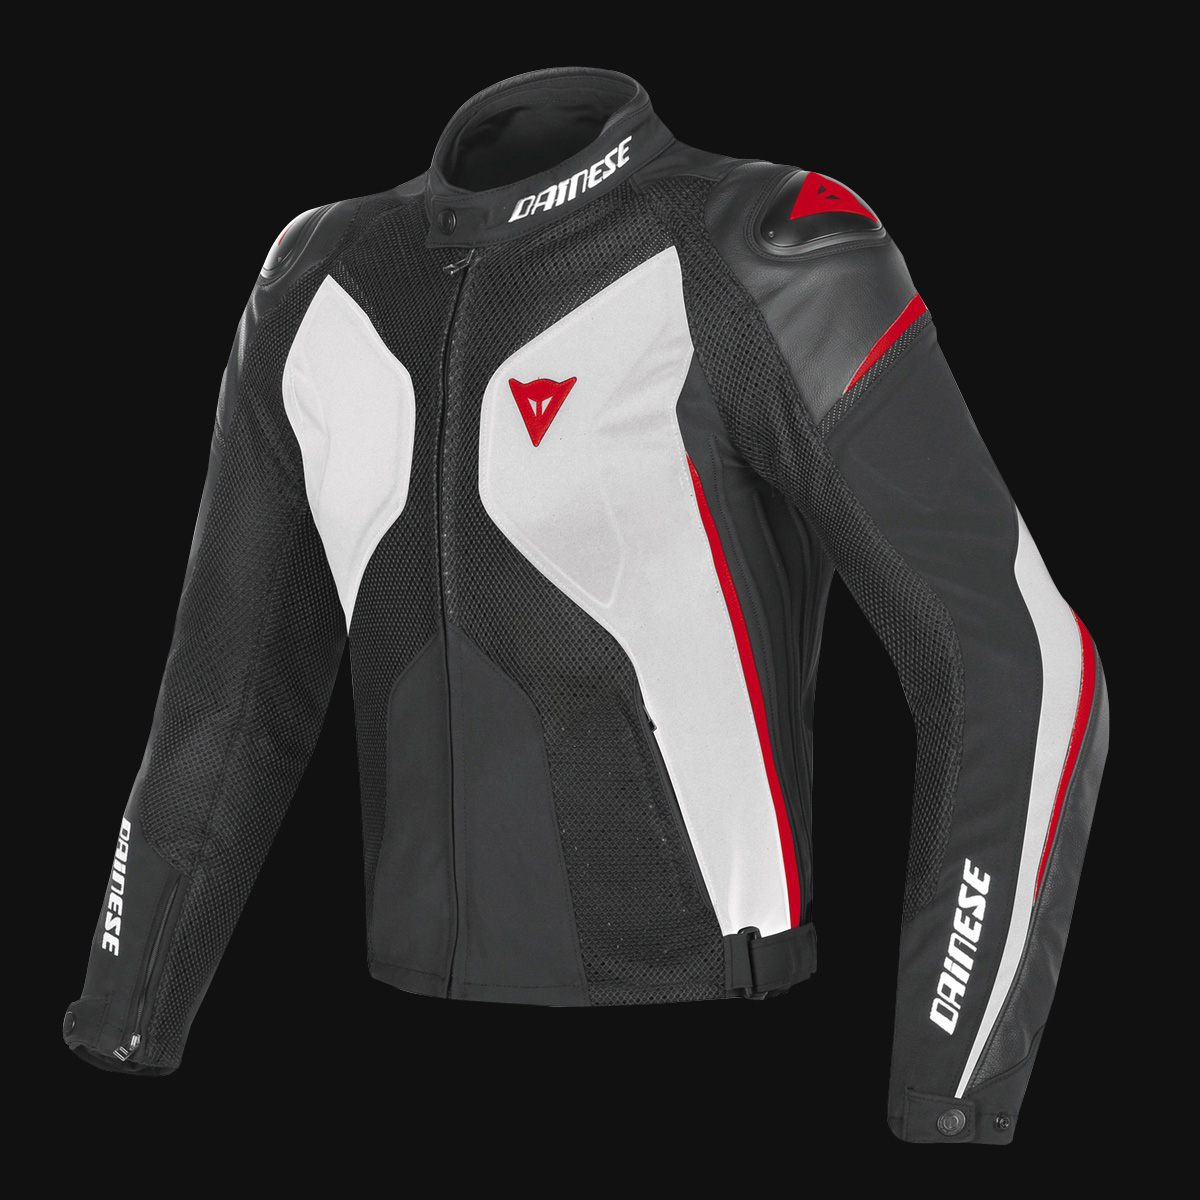 Dainese-รุ่น-Super-Rider-D-Dry-Jacket-3